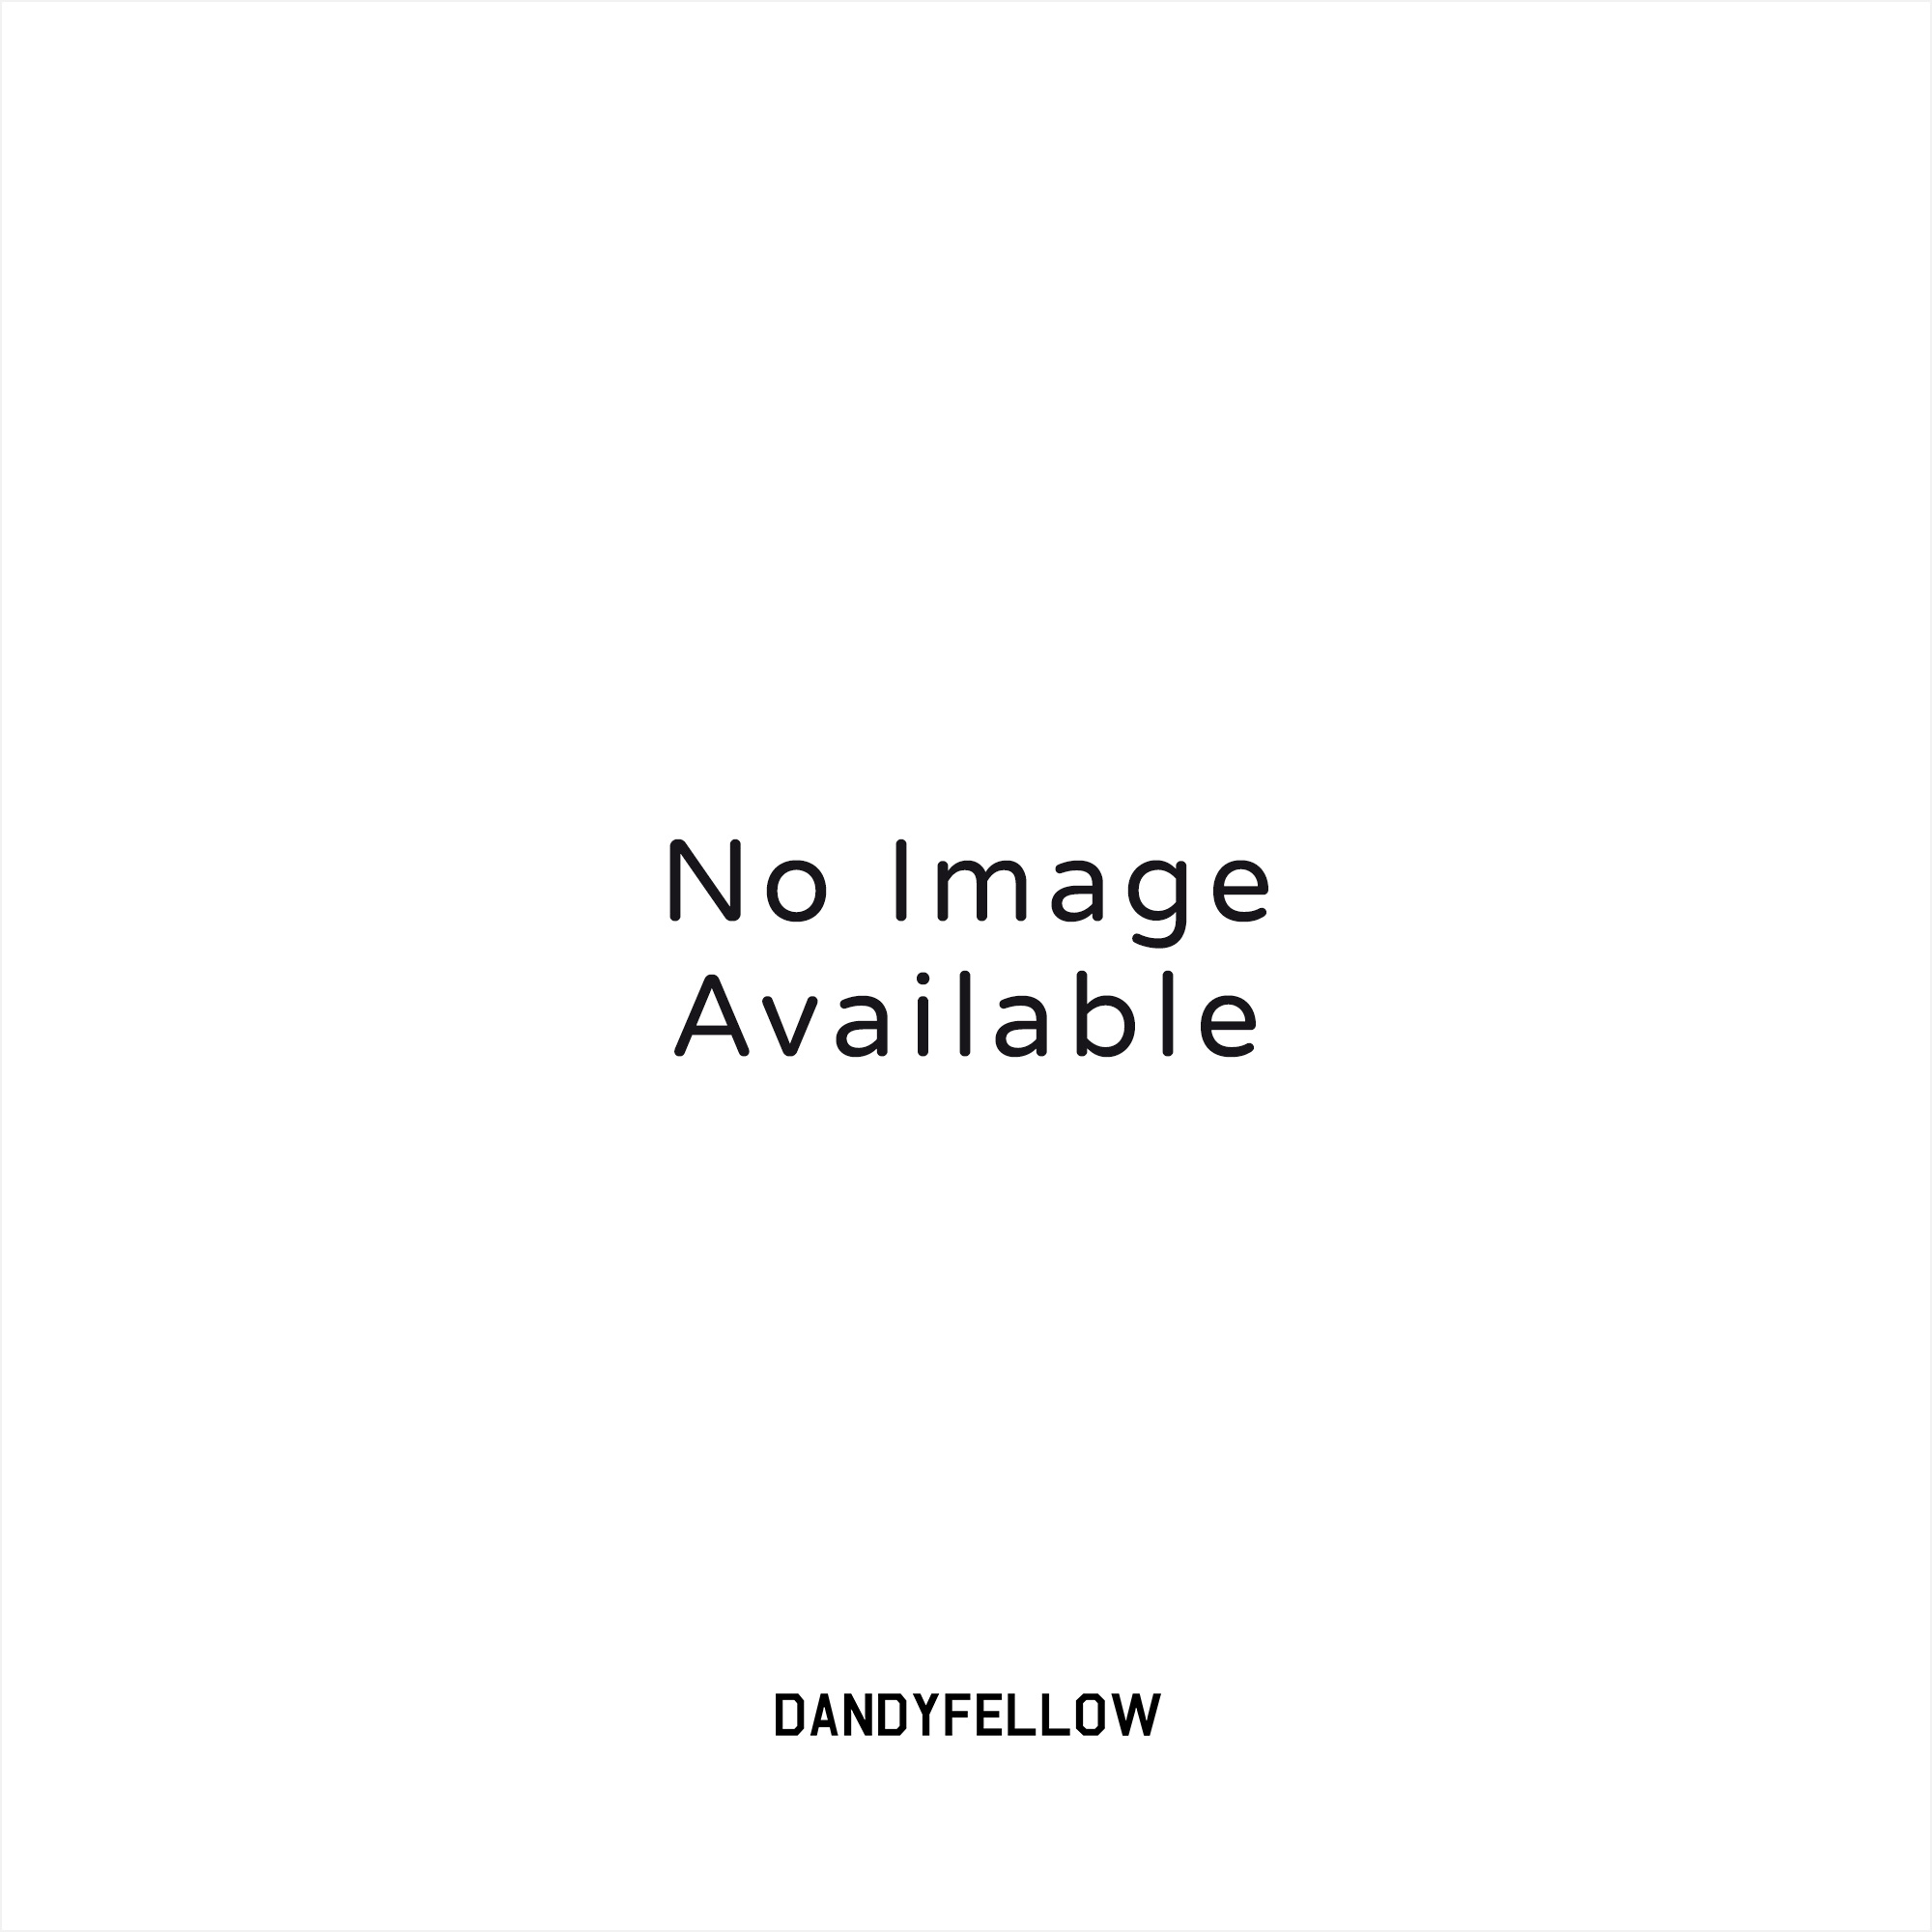 Burlington King Purple Argle Socks 21020 6862